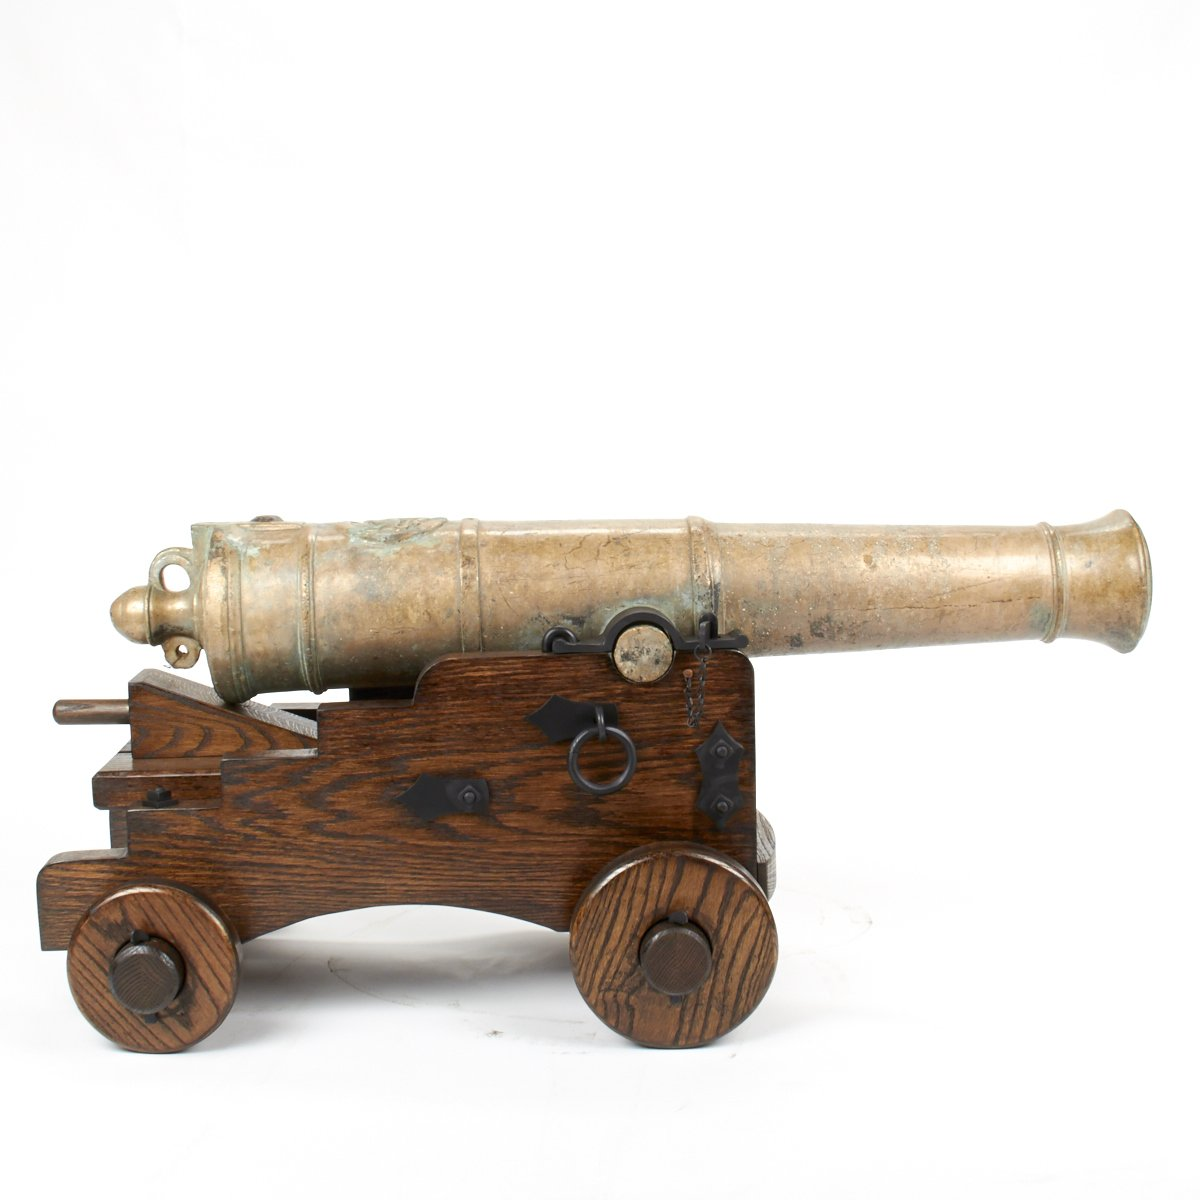 original 18th century 9 pounder demi culverin bronze cannon with oak